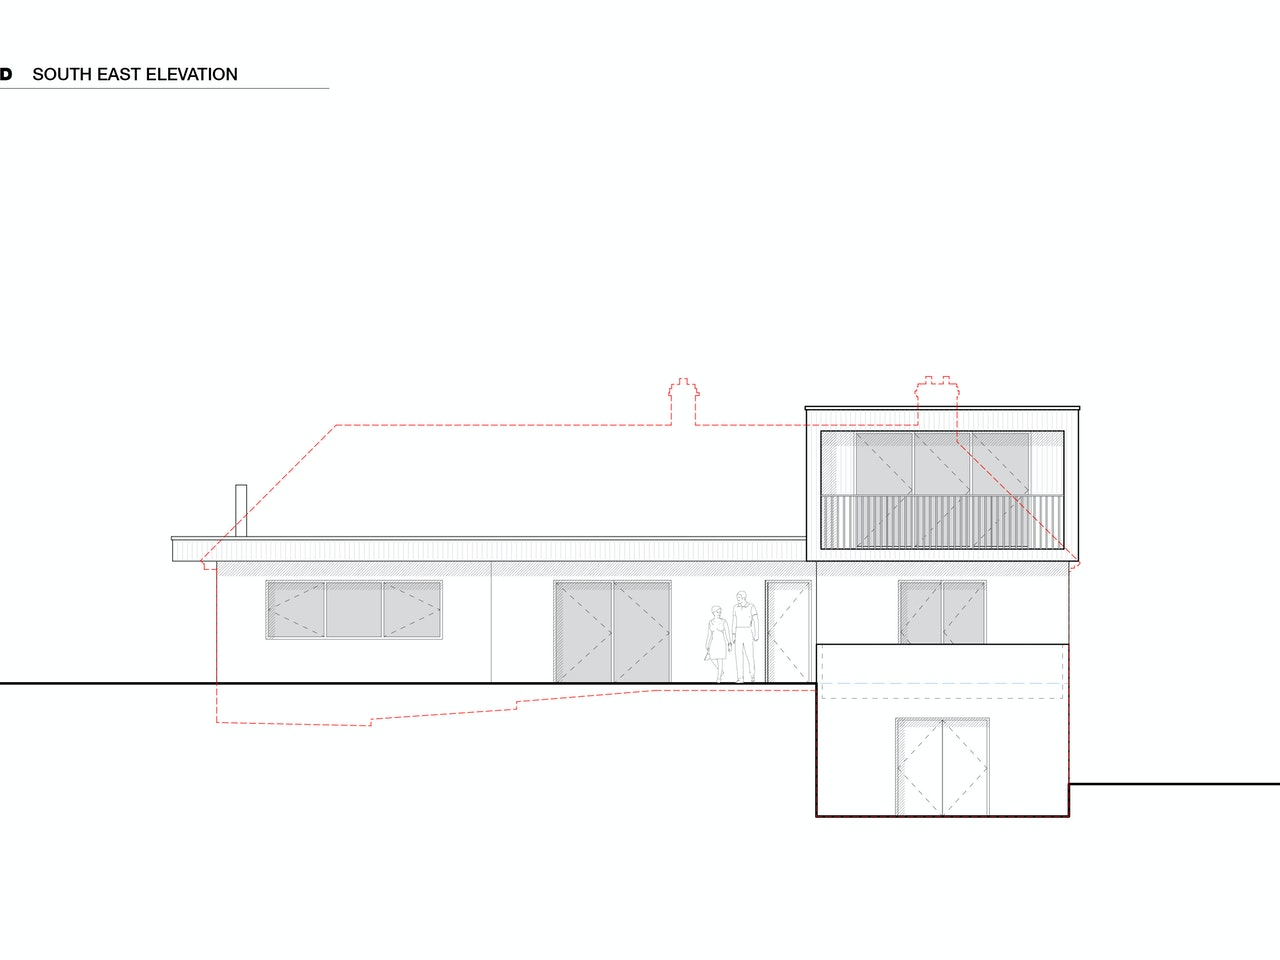 02 - south east elevation